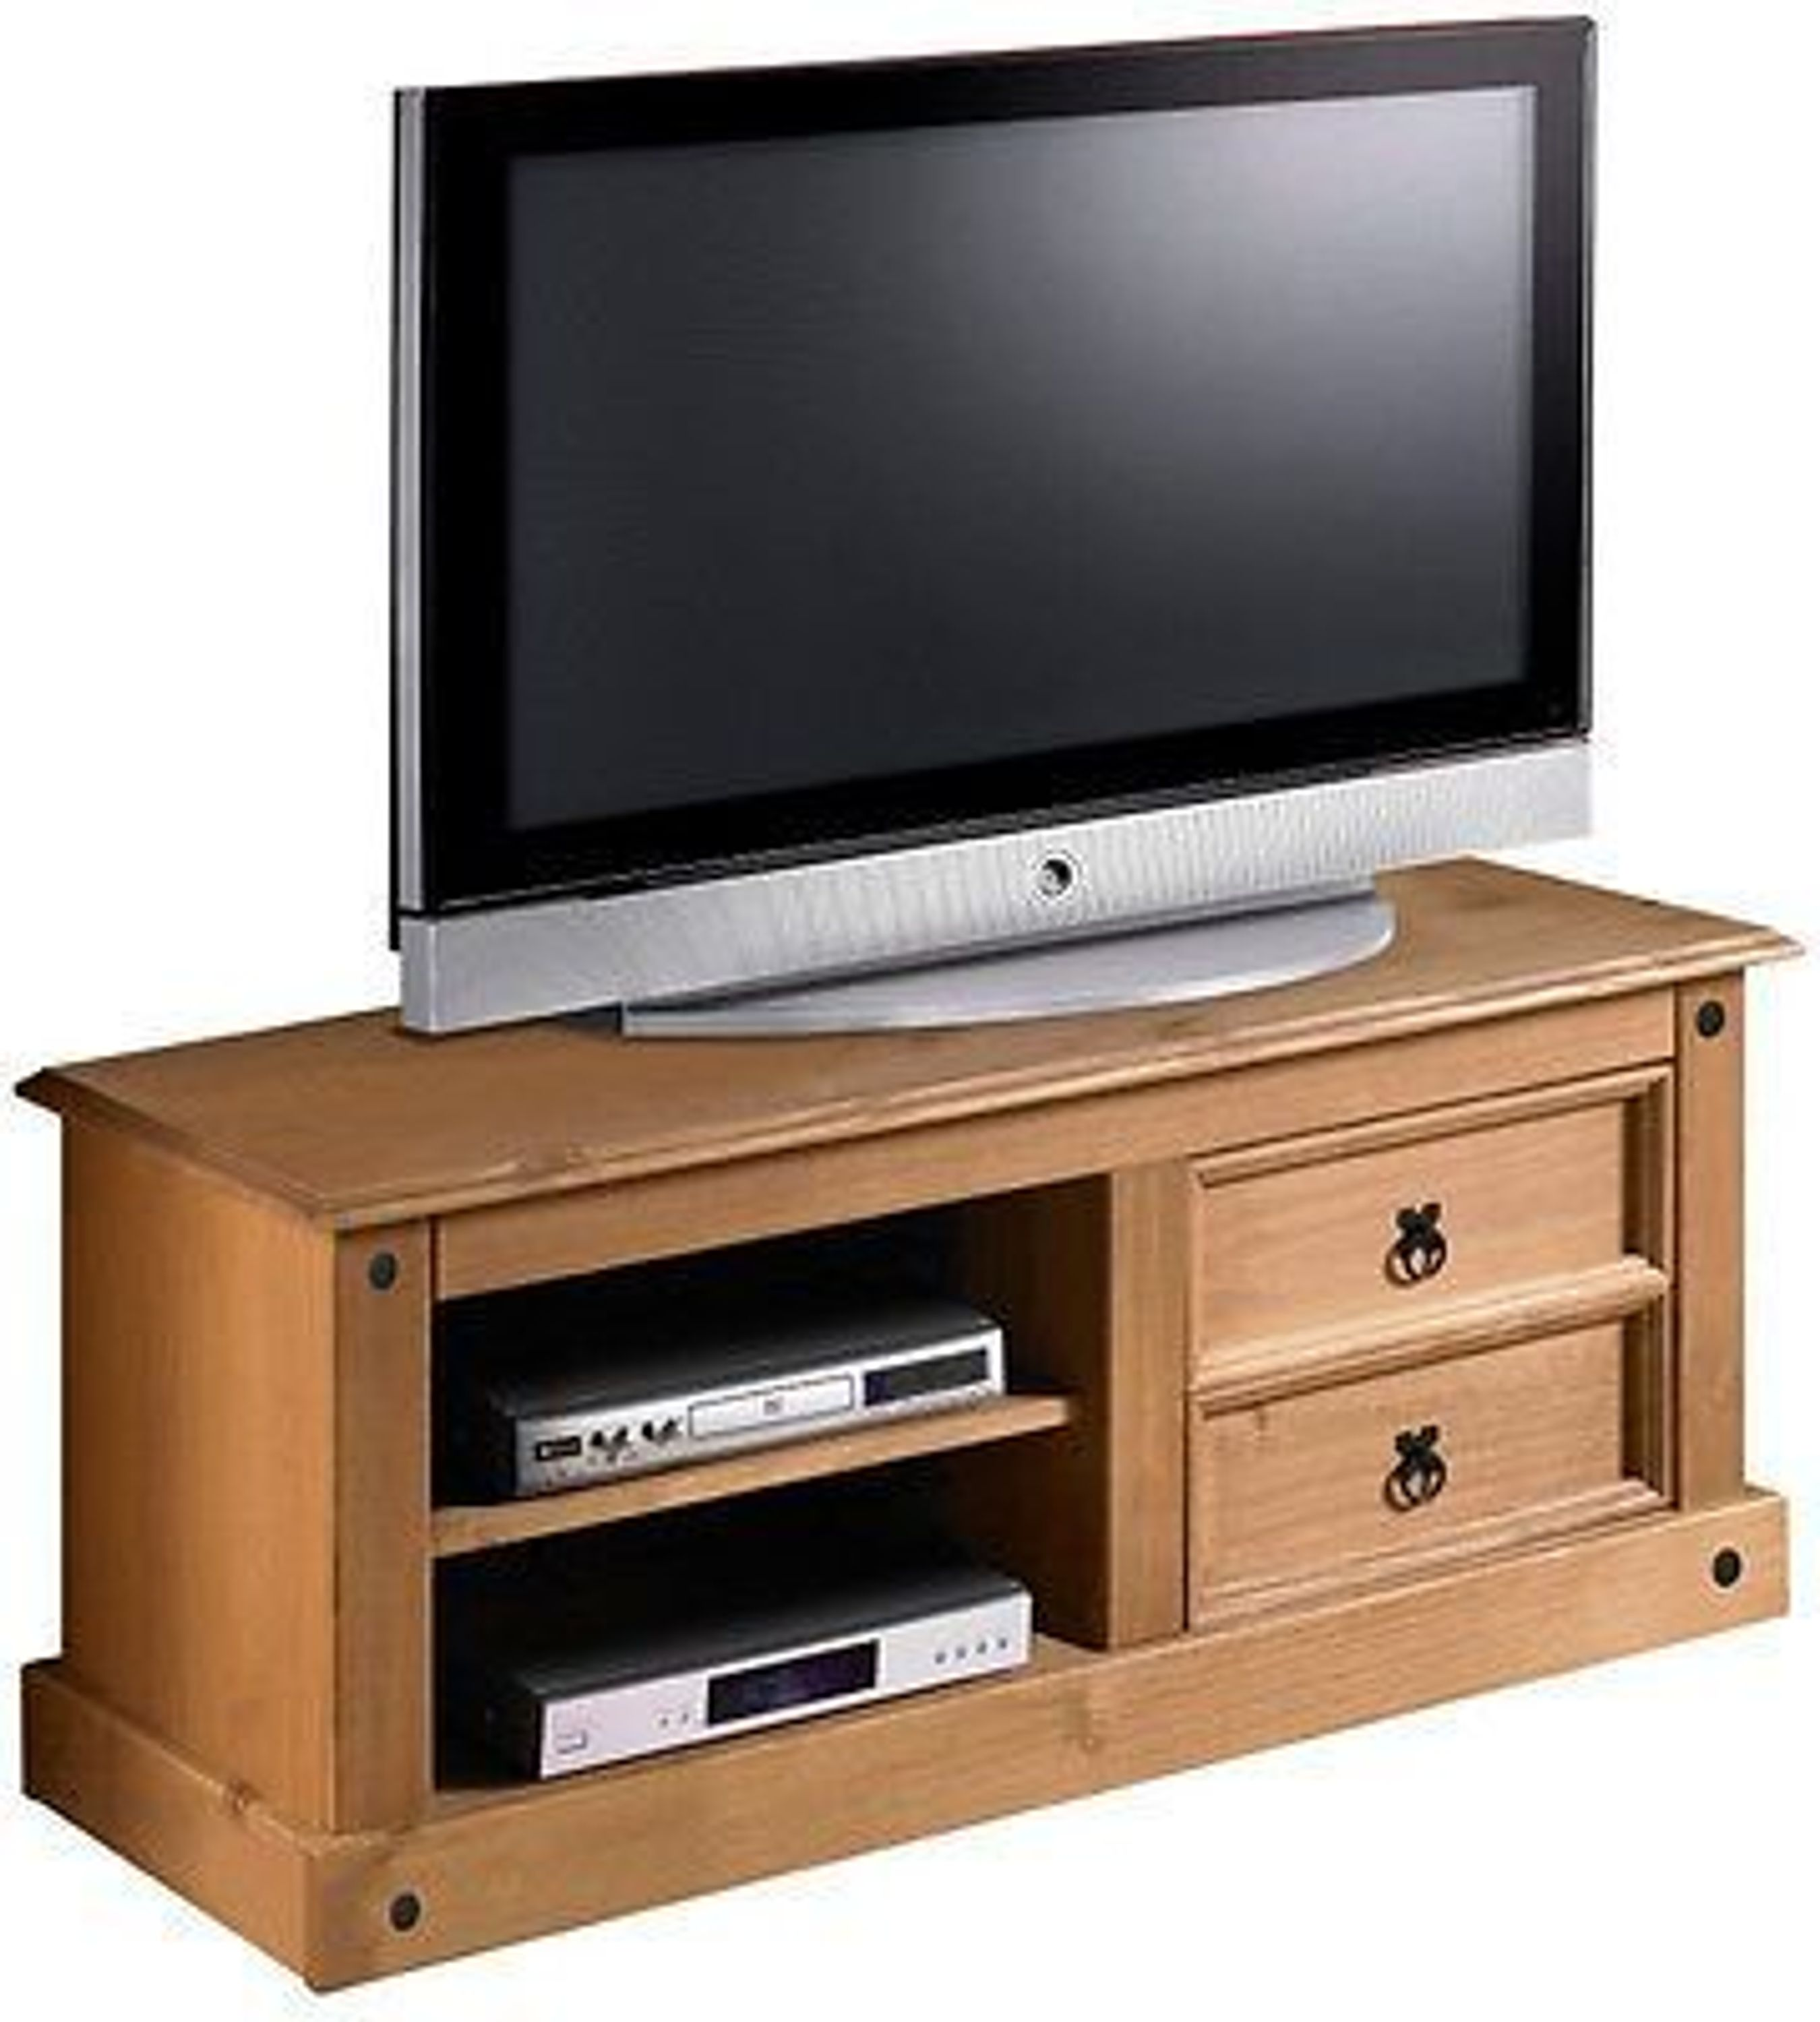 tv kommode schrank sideboard lowboard moebel pinienholz kolonialstil mexico bp kaufen bei. Black Bedroom Furniture Sets. Home Design Ideas